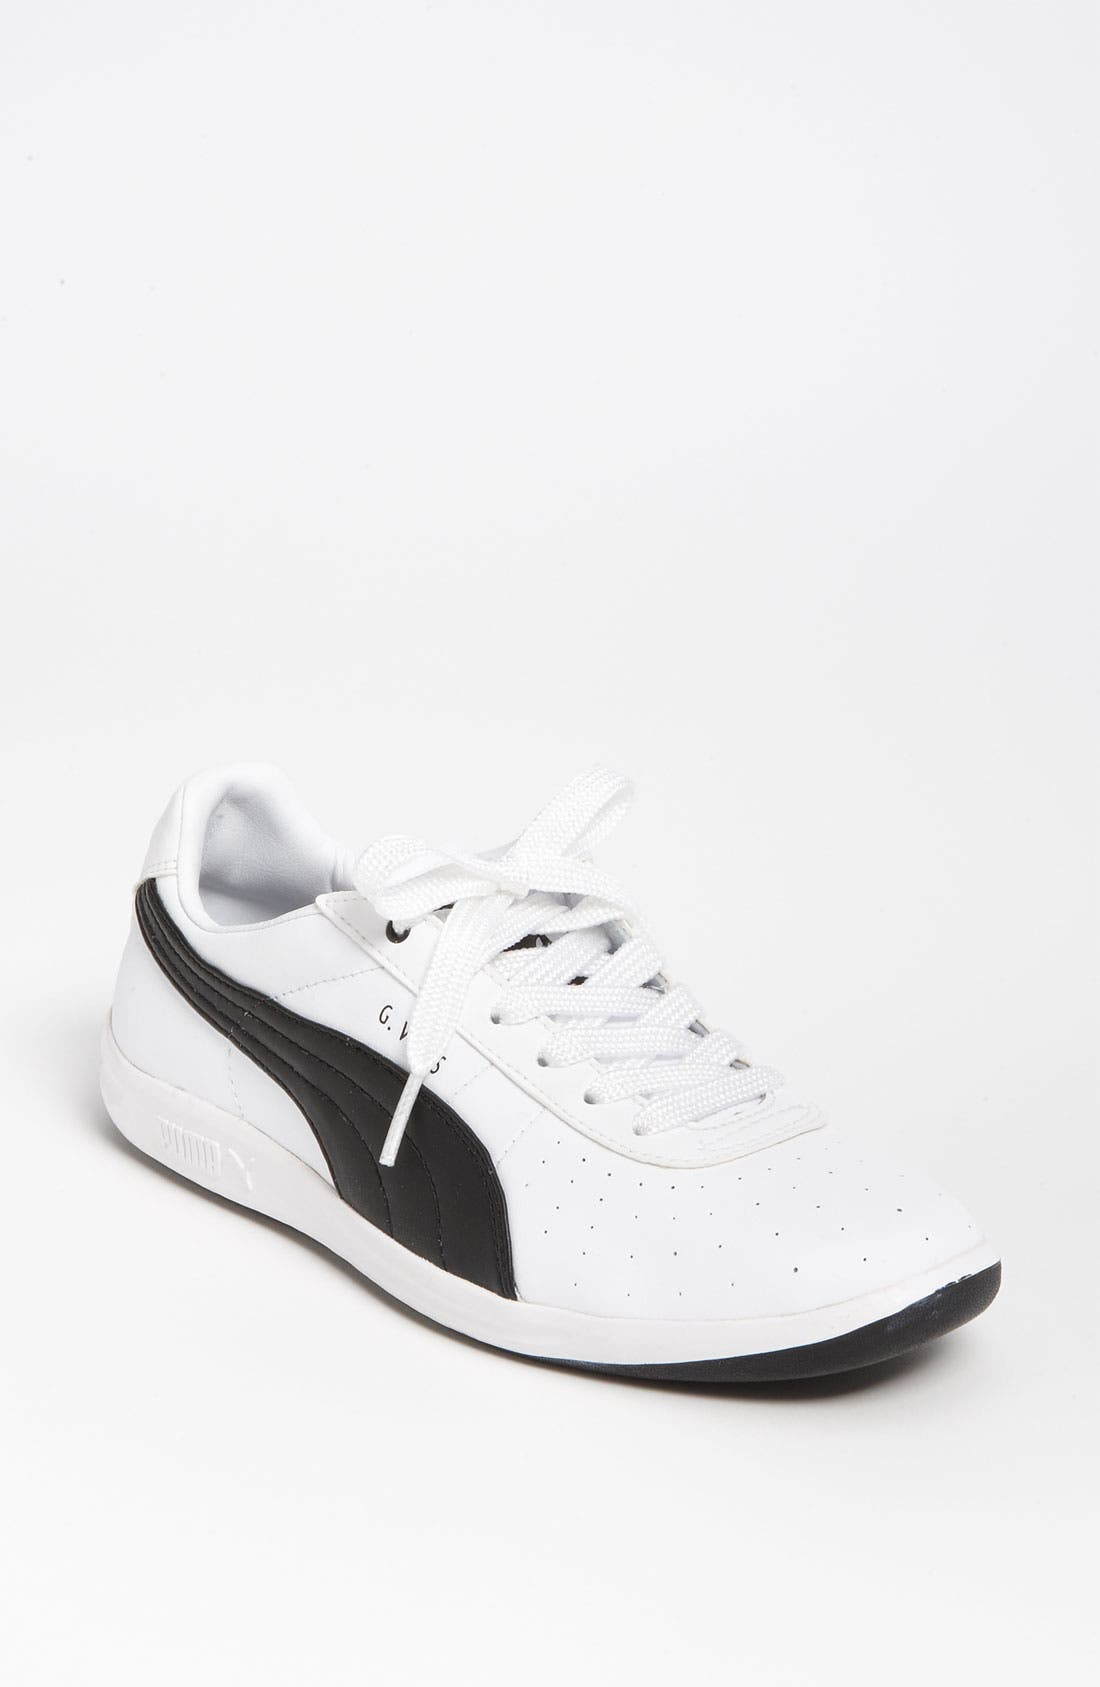 Alternate Image 1 Selected - PUMA 'Vilas' Sneaker (Women)